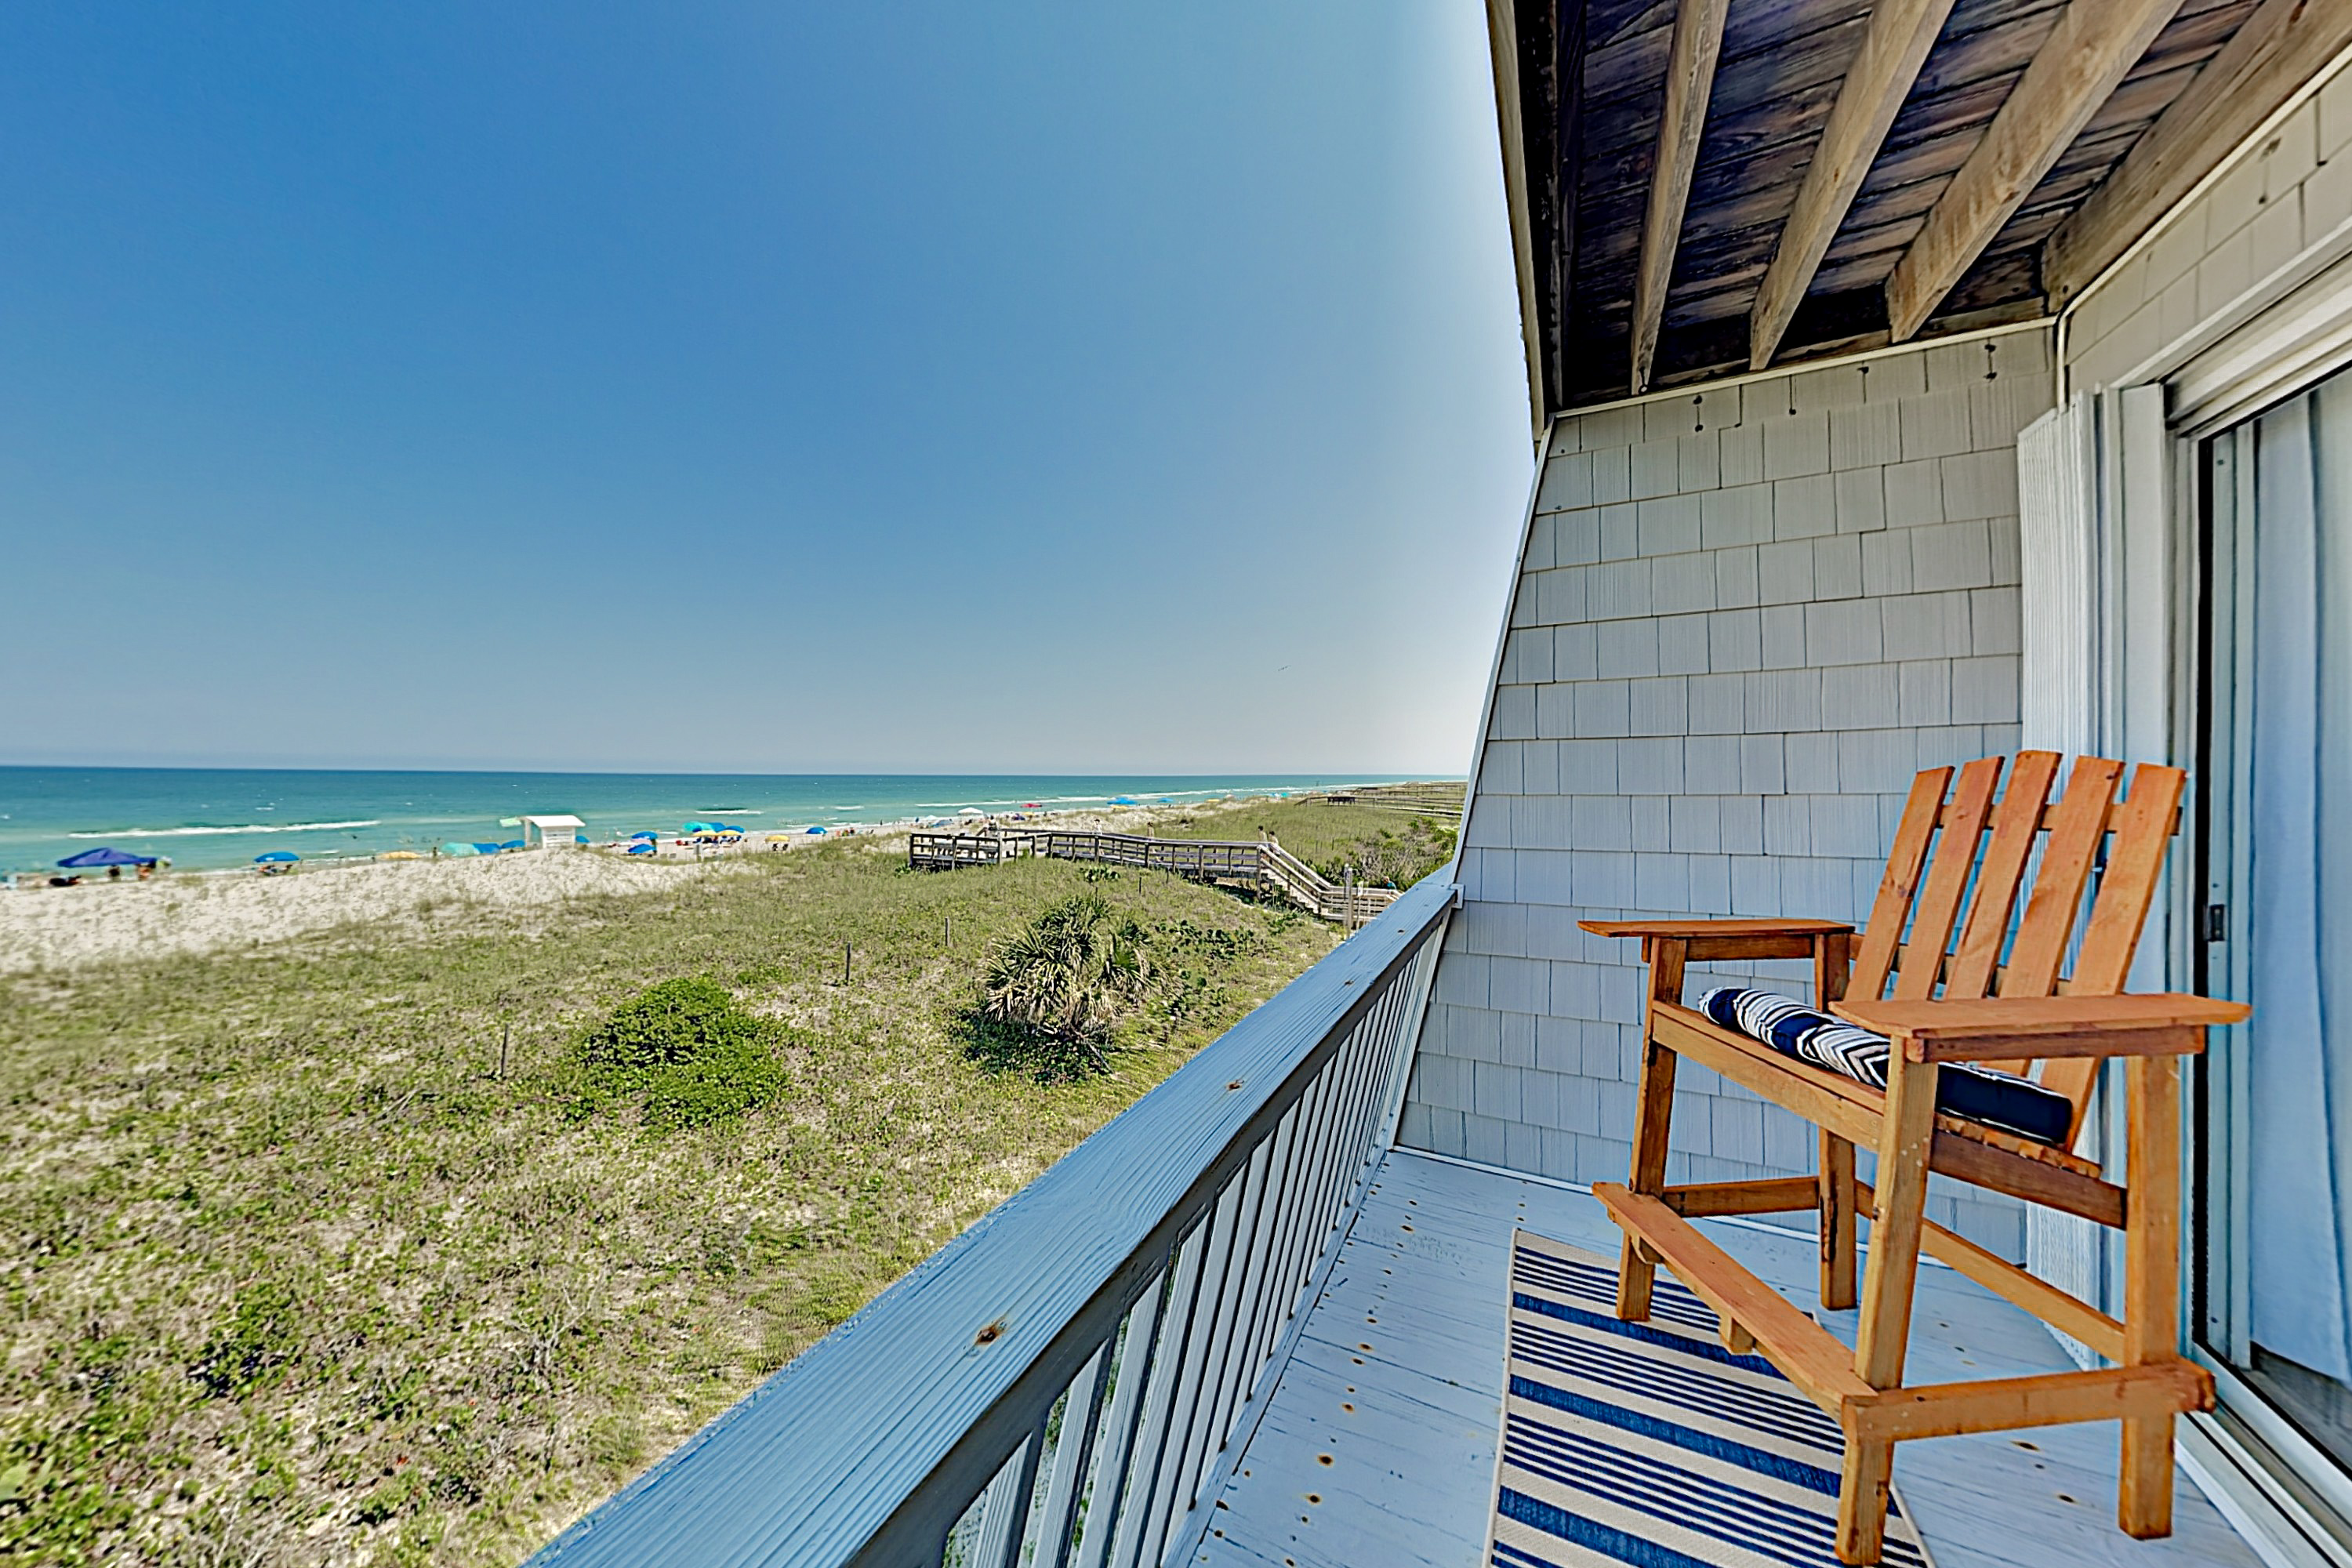 Carolina Beach NC Vacation Rental Welcome to Carolina